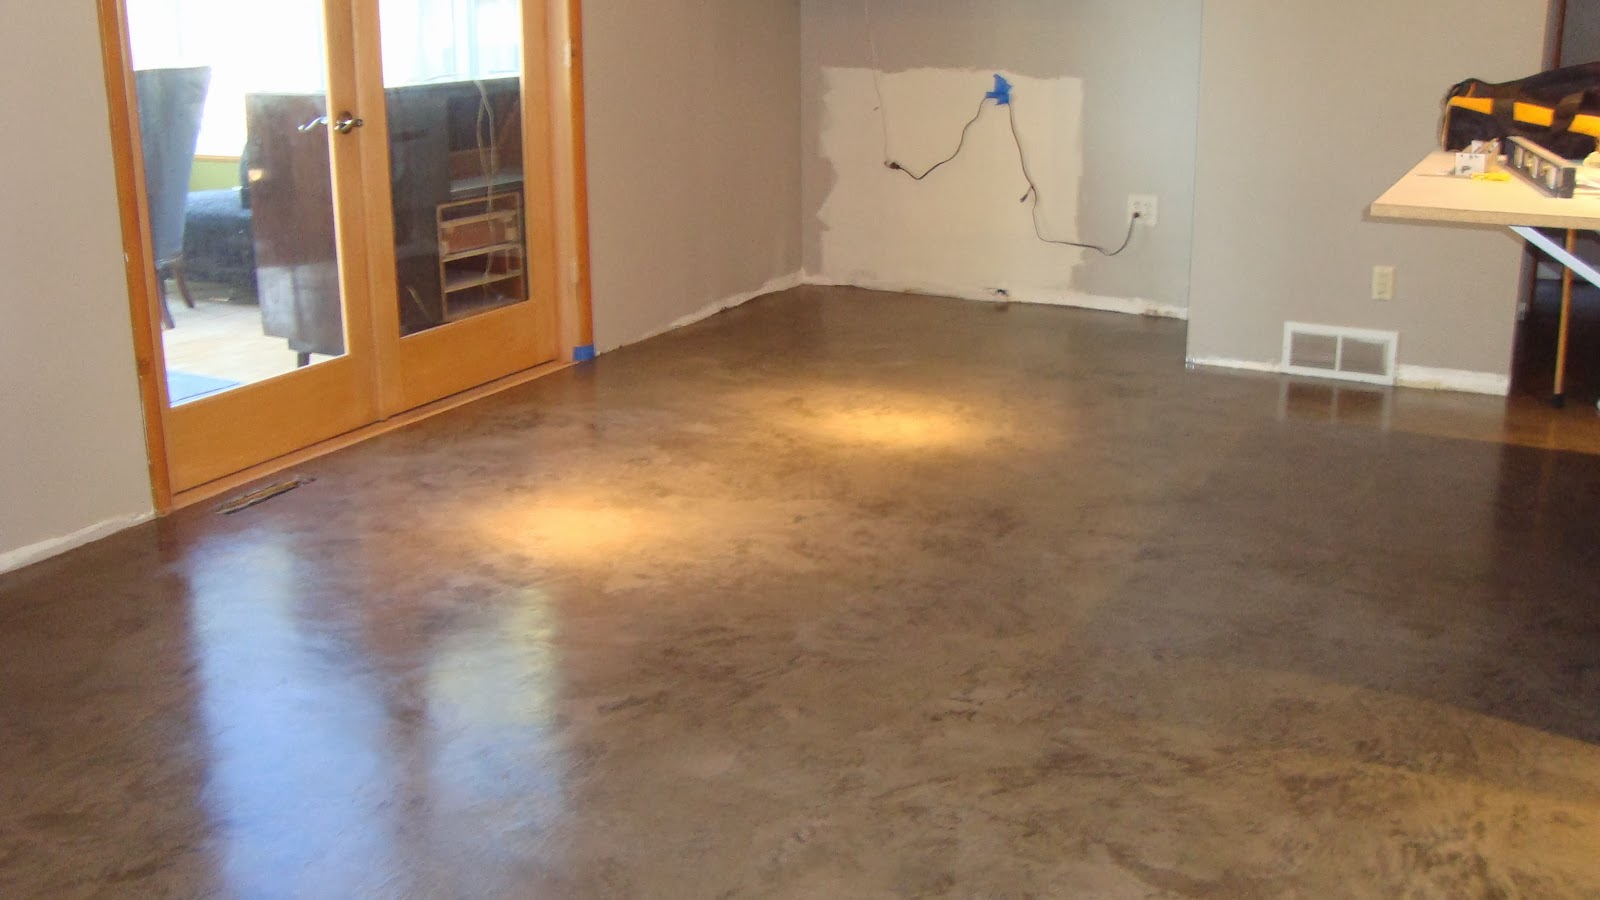 your decorative floor thinking blog heard carpeted overlay holland you mound overlayed flower floors custom so perhaps are if concrete have dallas of in redesigning stained tile tx or